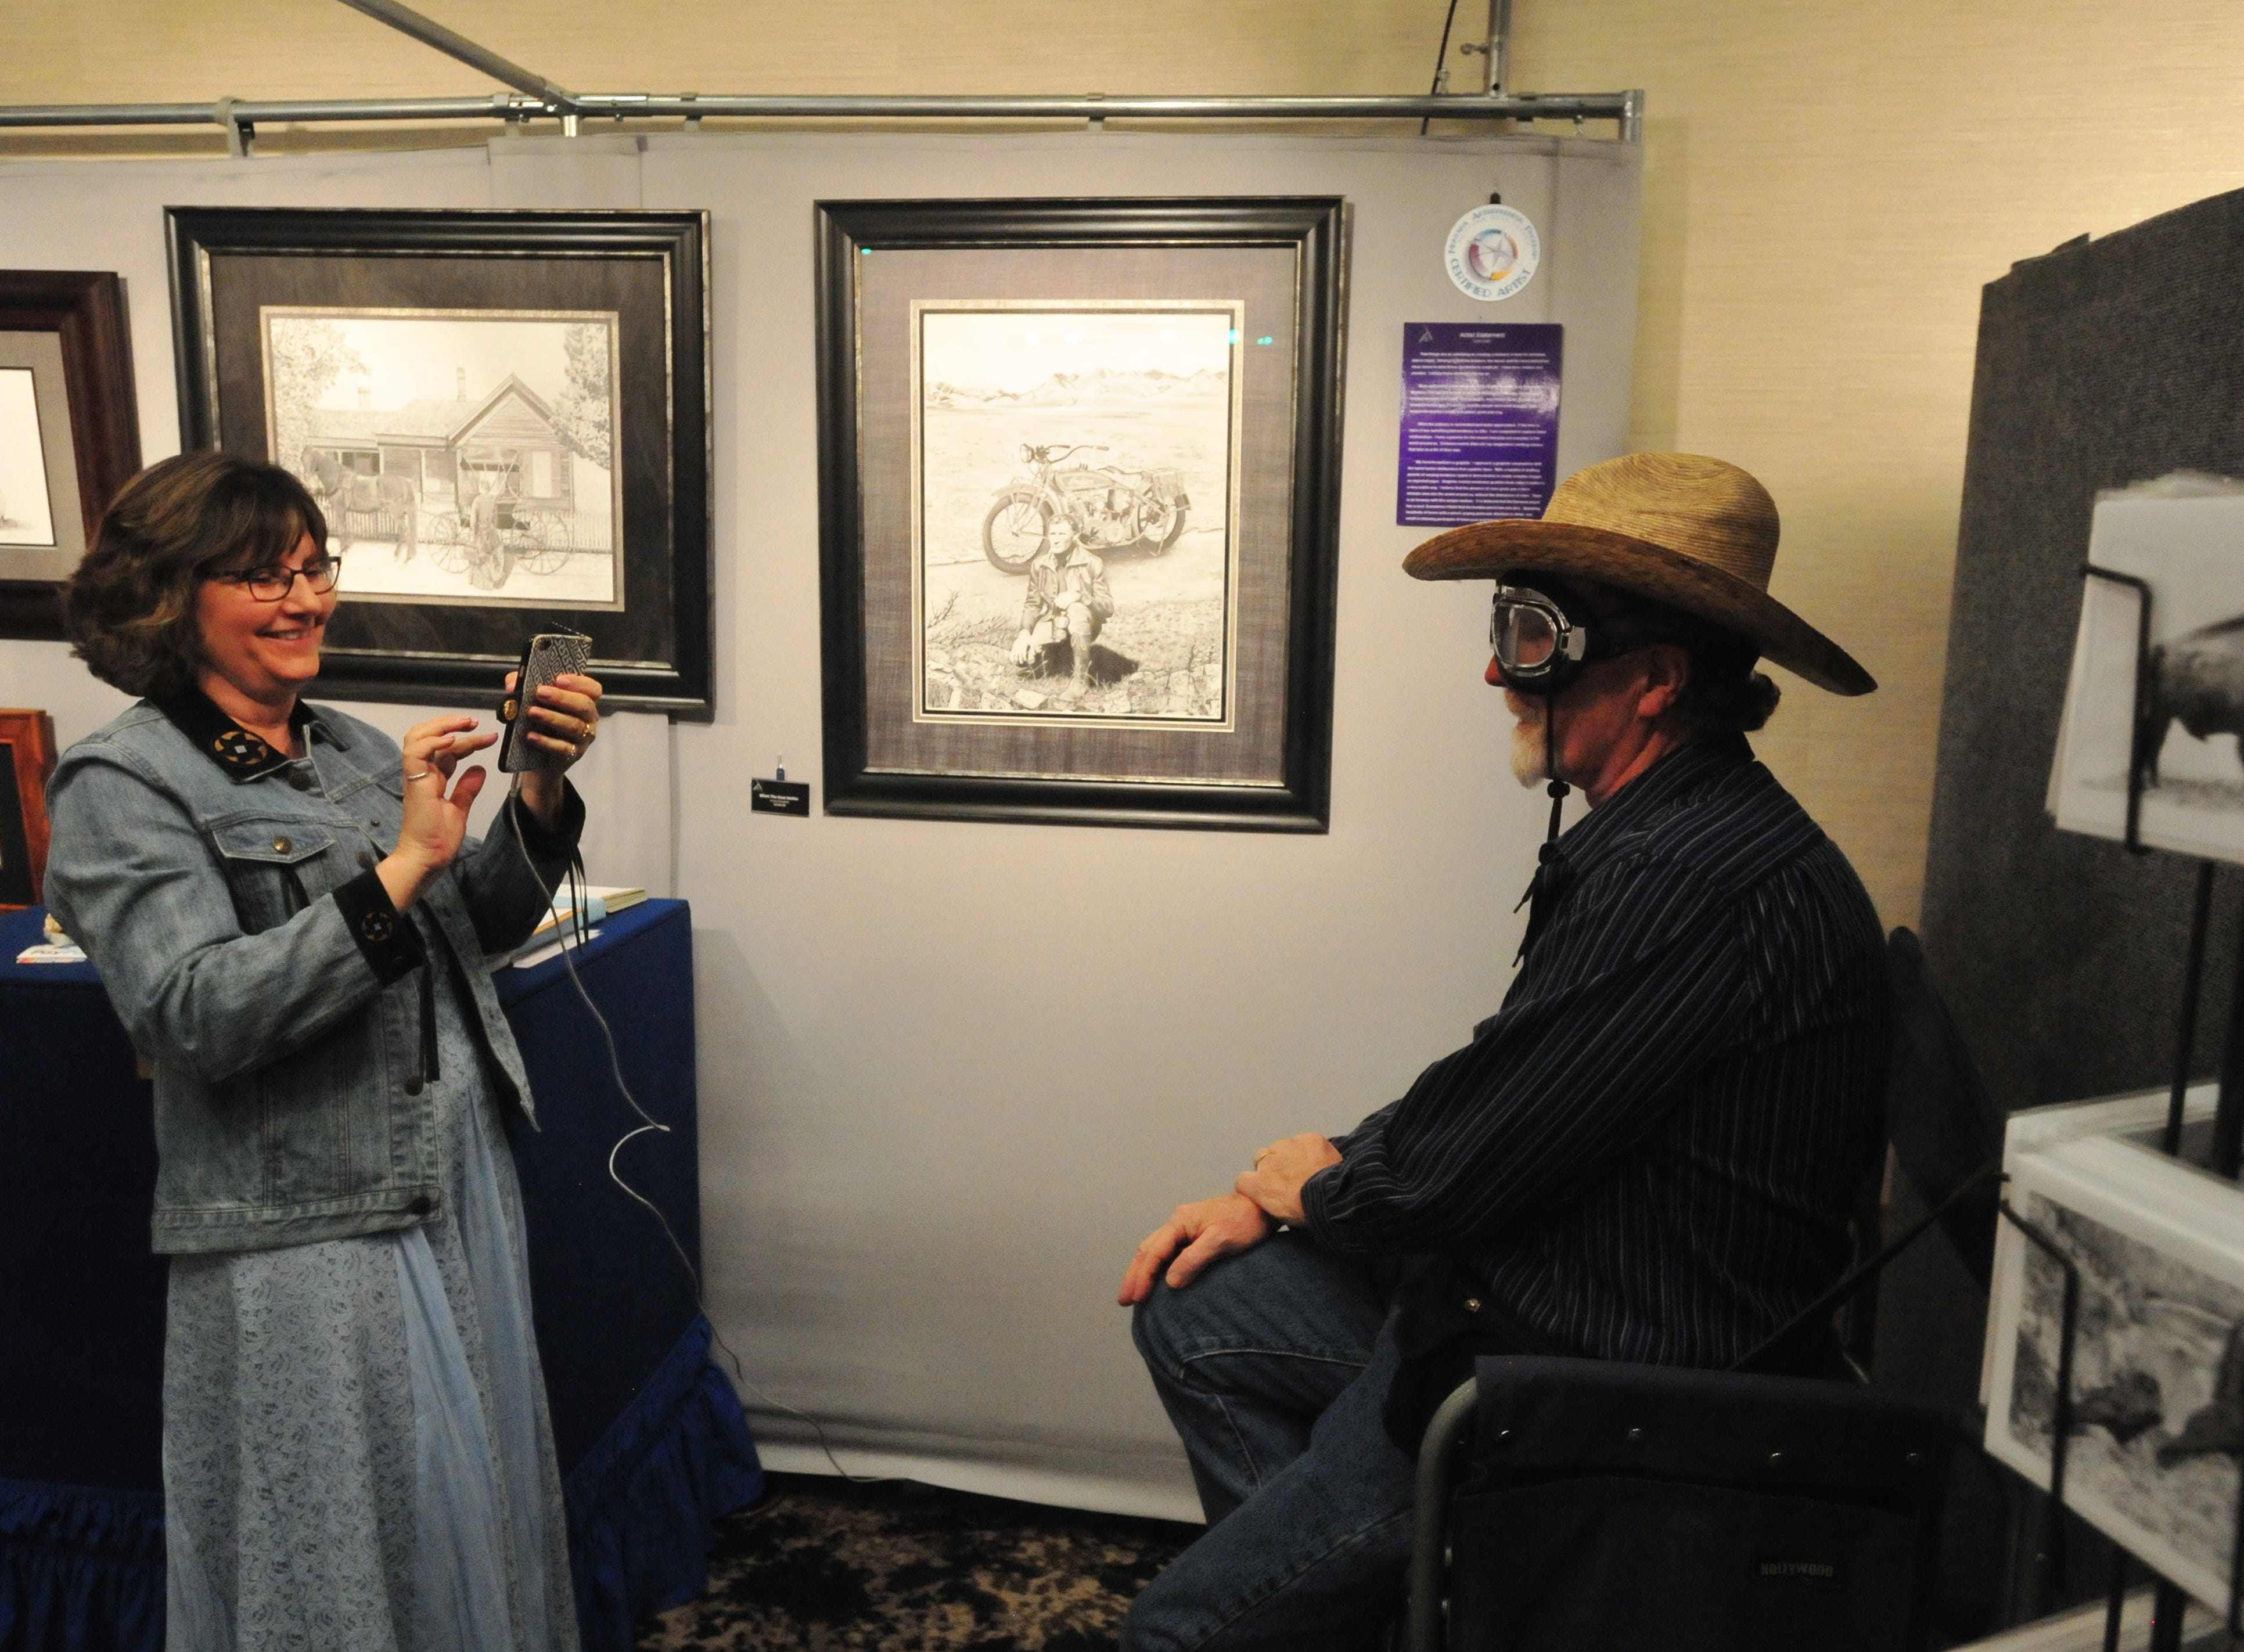 Debbie Cain snaps a photo of her husband, artist Lynn Cain, wearing his replica aviator goggles at the Wild Bunch Art Show in the Hampton Inn, Thursday.  Cain used the goggles in one of his pencil drawings of a man and his motorcycle.